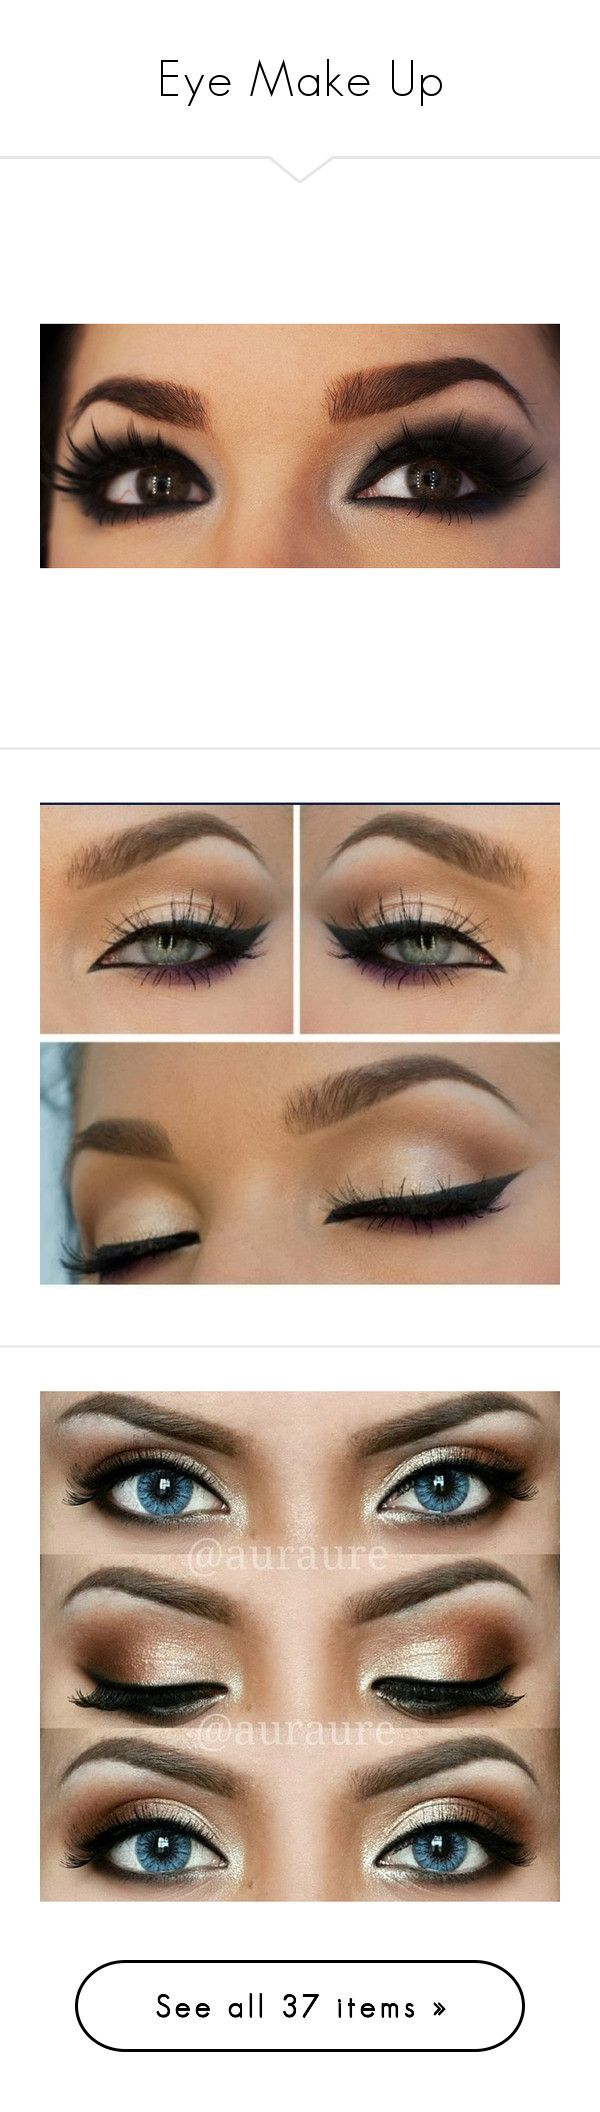 """""""Eye Make Up"""" by directioner-16-17 ❤ liked on Polyvore featuring beauty products, makeup, eyes, beauty, eye makeup, maquiagem, eyeshadow, pictures, photos and fillers"""